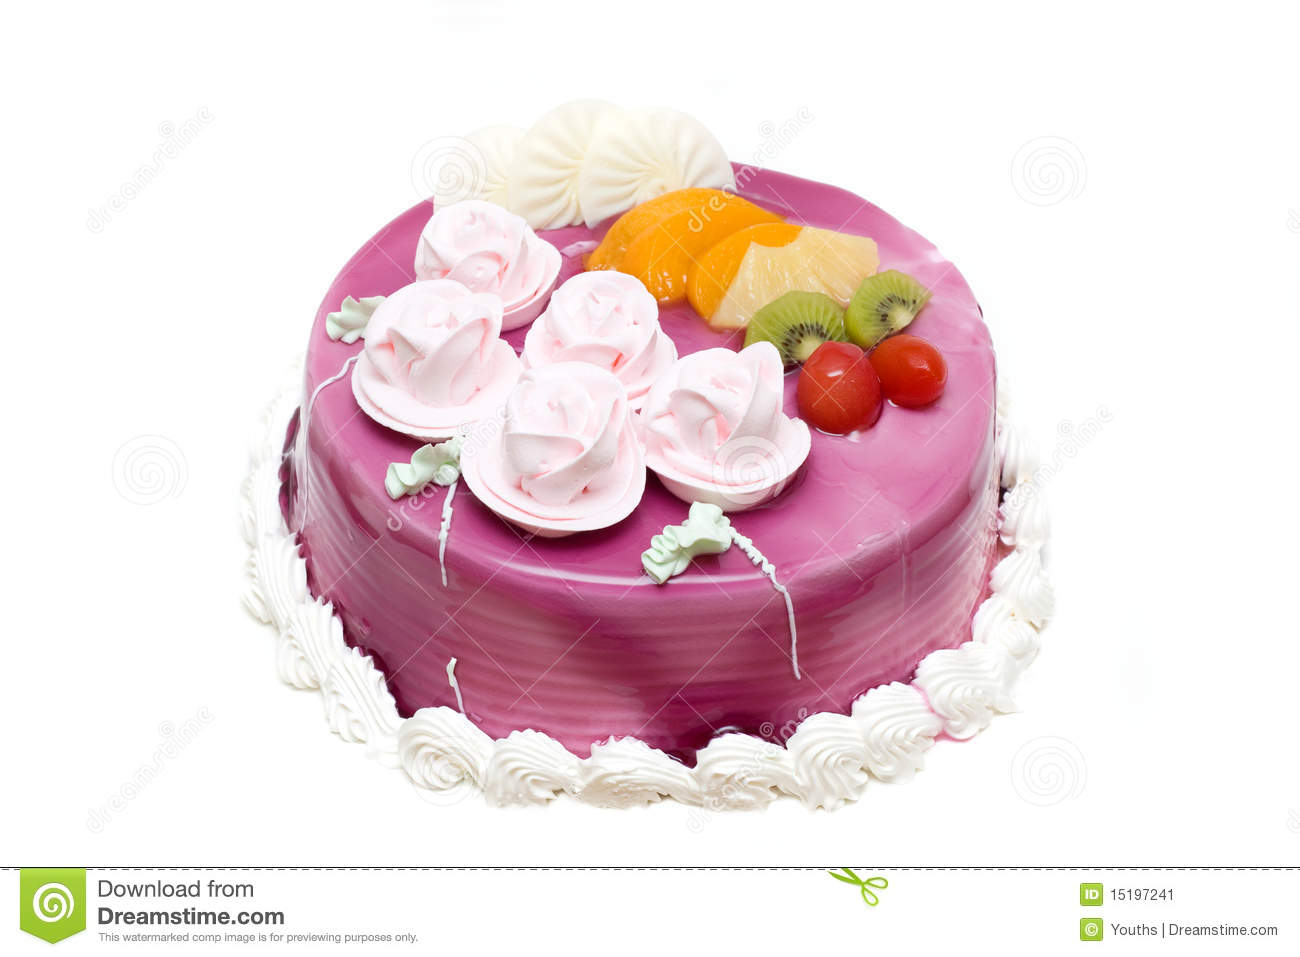 Calories In A Piece Of White Birthday Cake